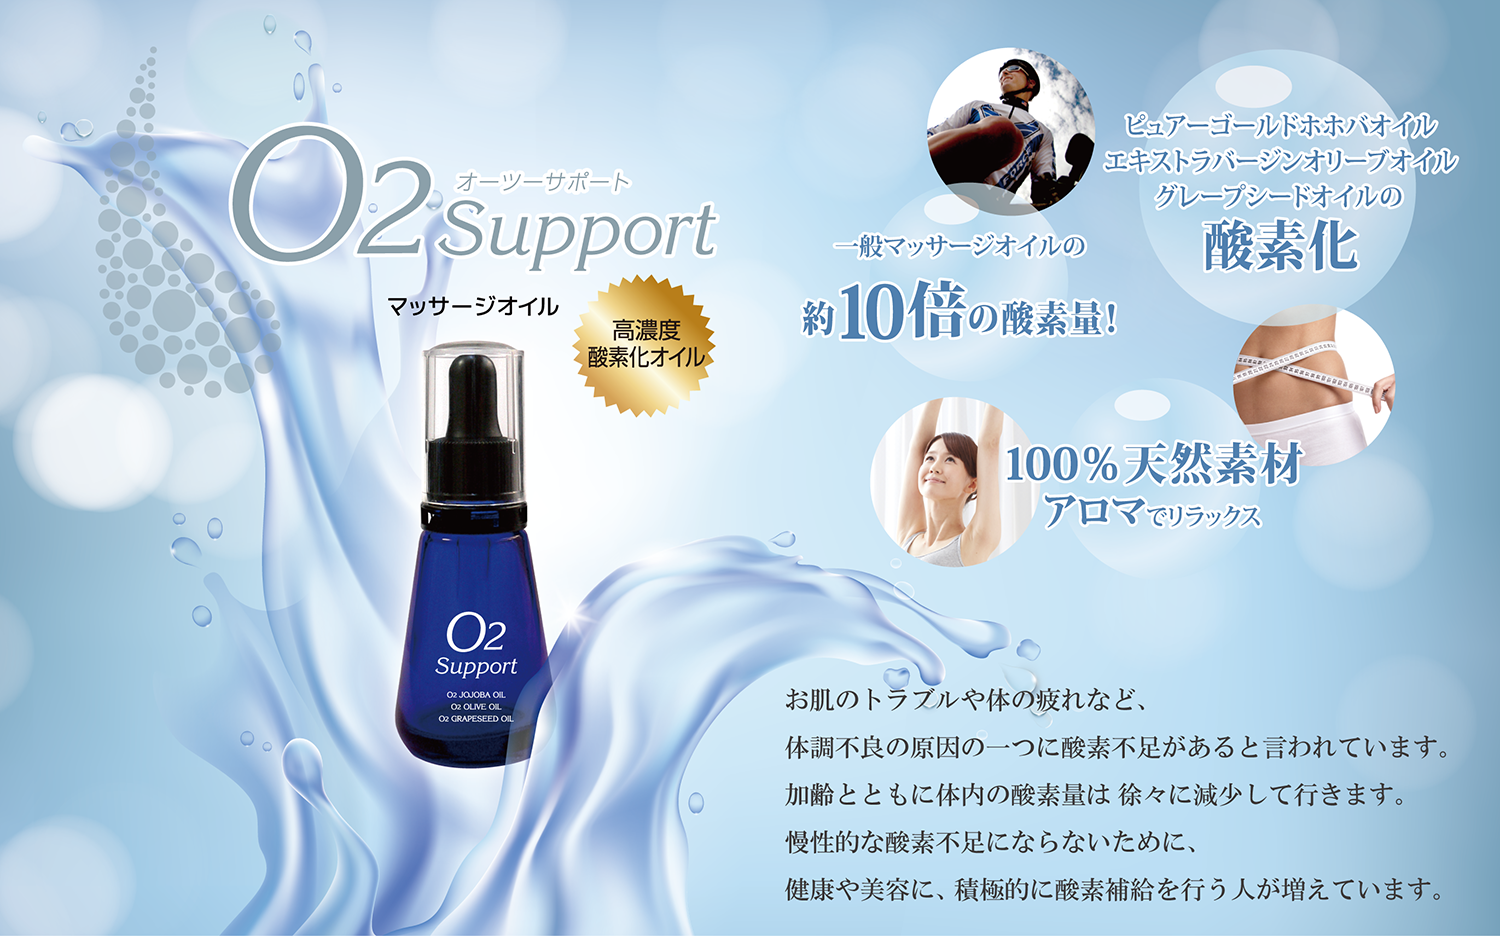 02support01